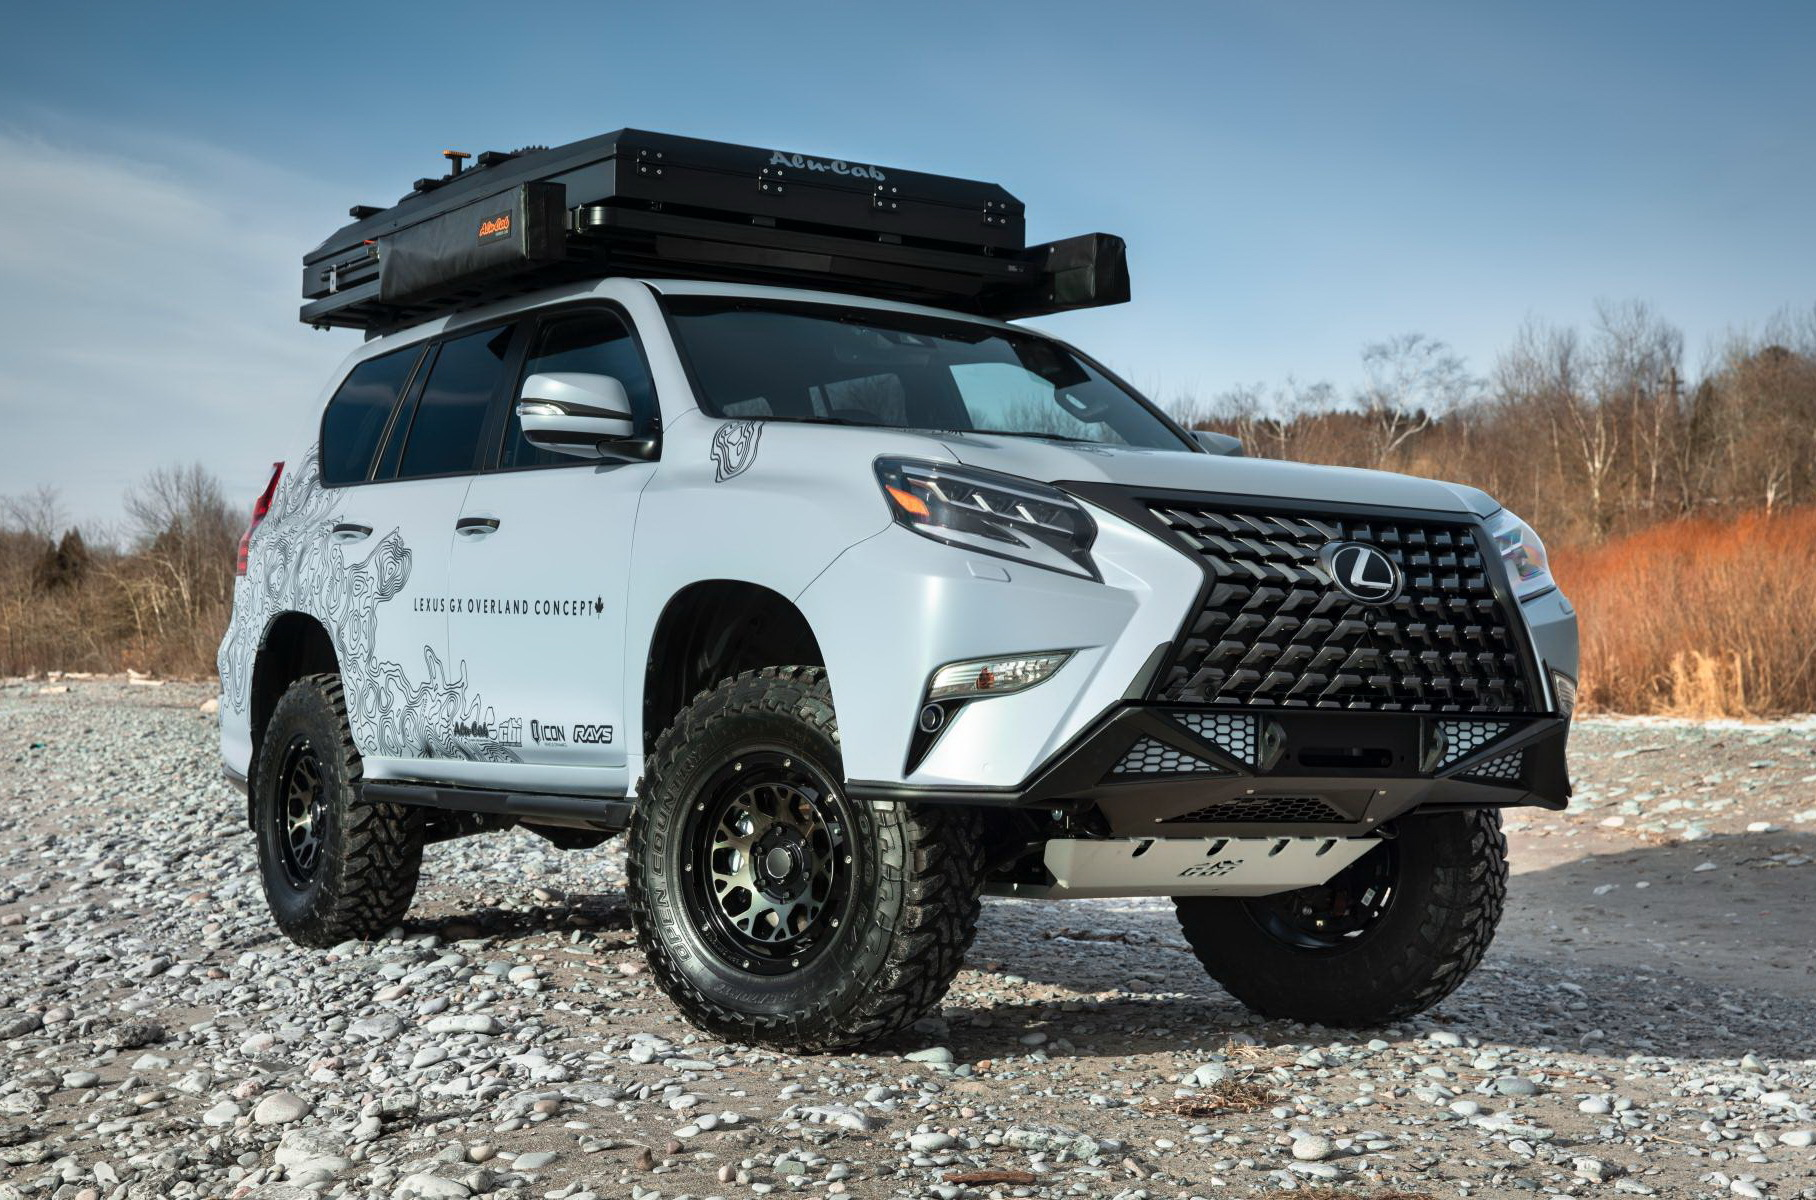 The GX Overland Concept clearly appeals to off-road drivers and comes armed with such necessities as reinforced bumpers, a suspension lift, skid plates, meaty tires, and a roof tent.